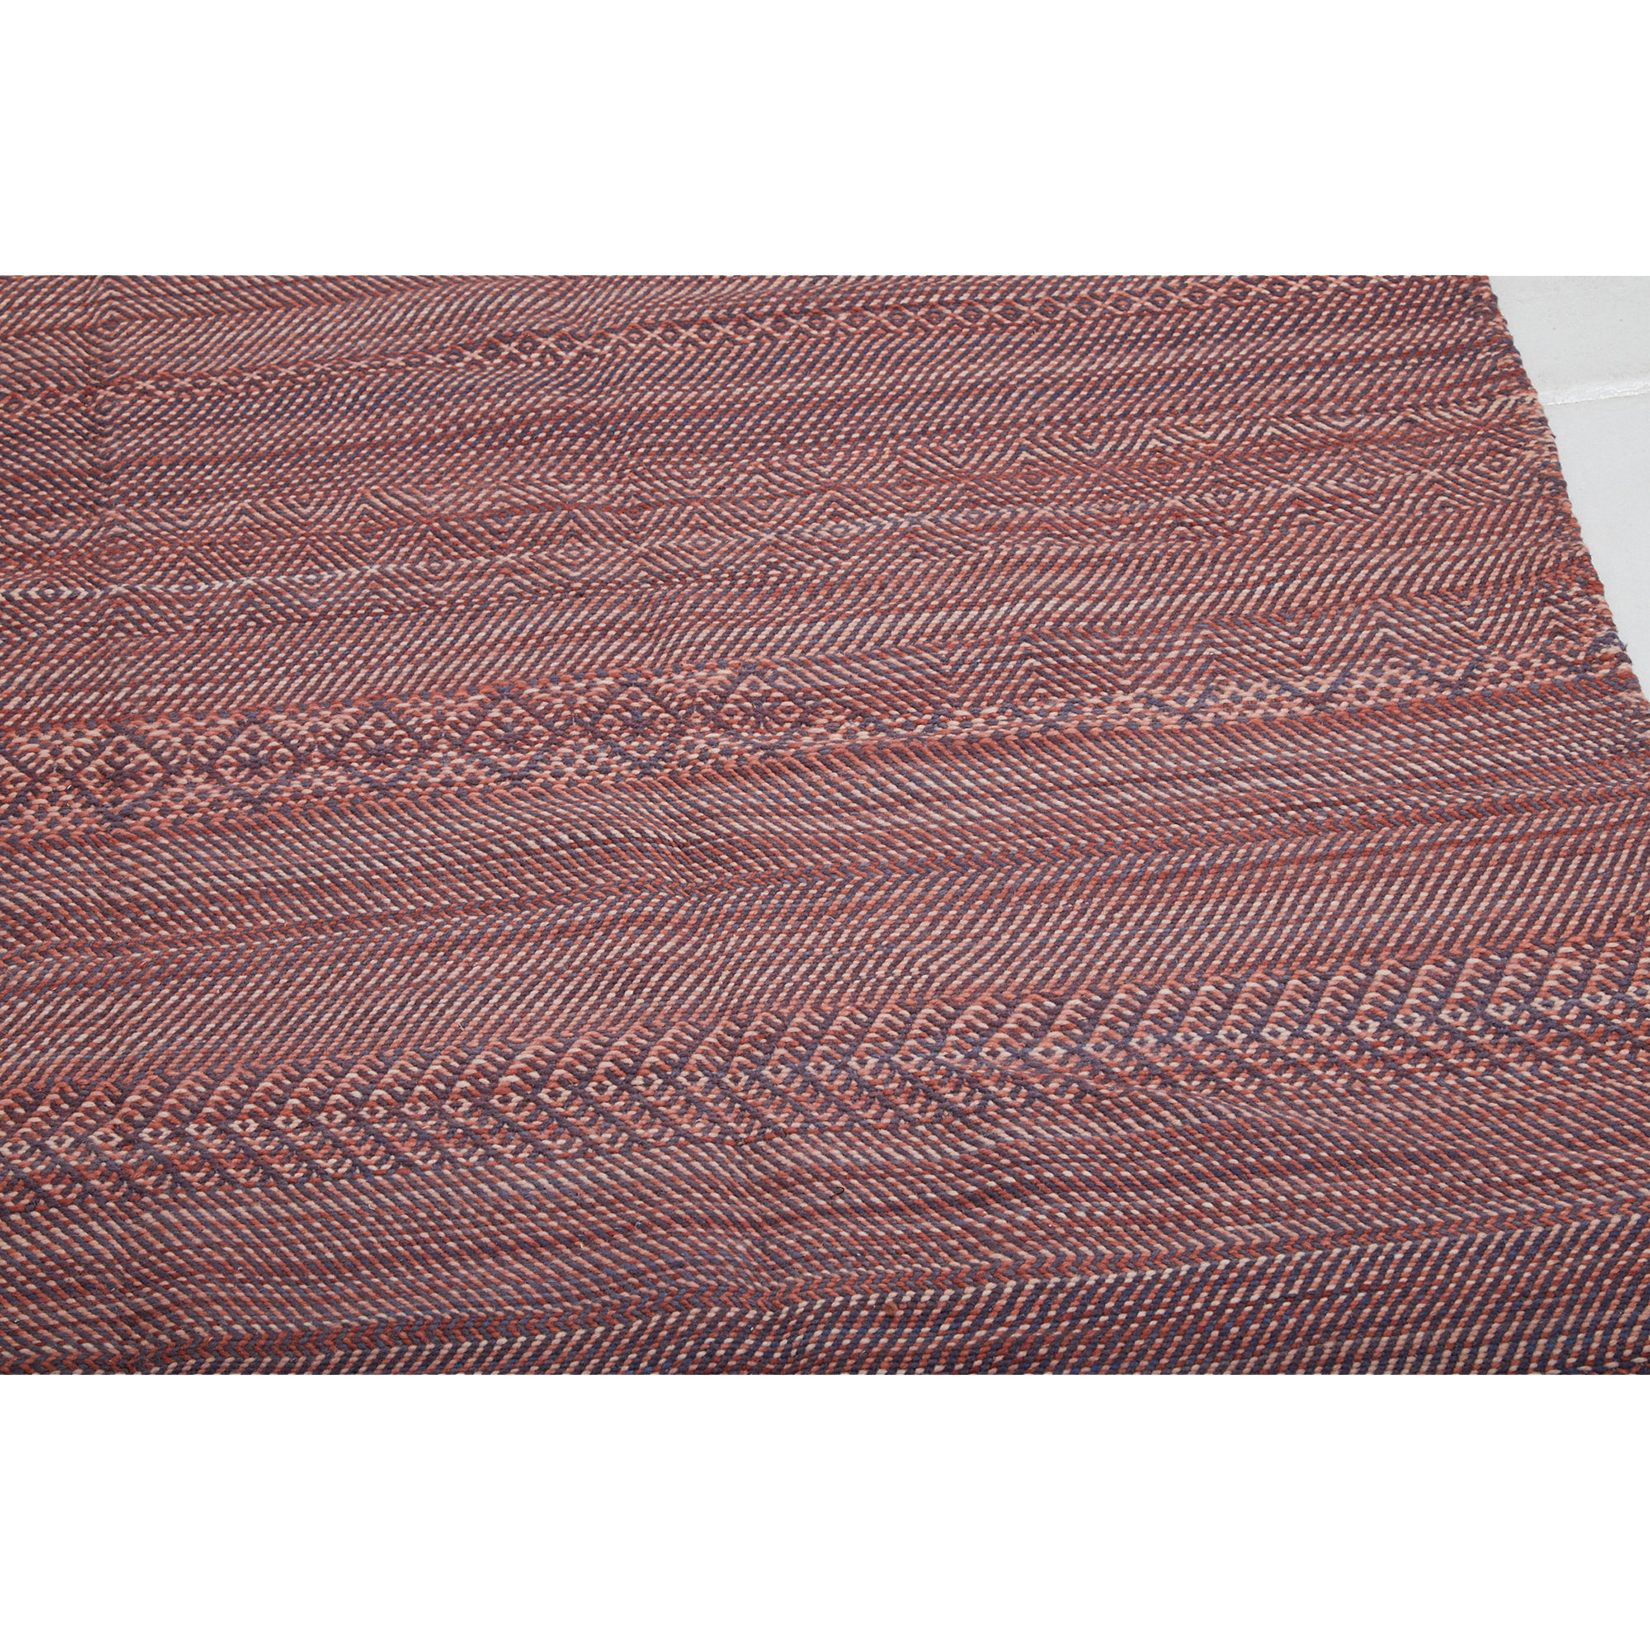 Authentic tribal red berber carpet - Kantara | Moroccan Rugs